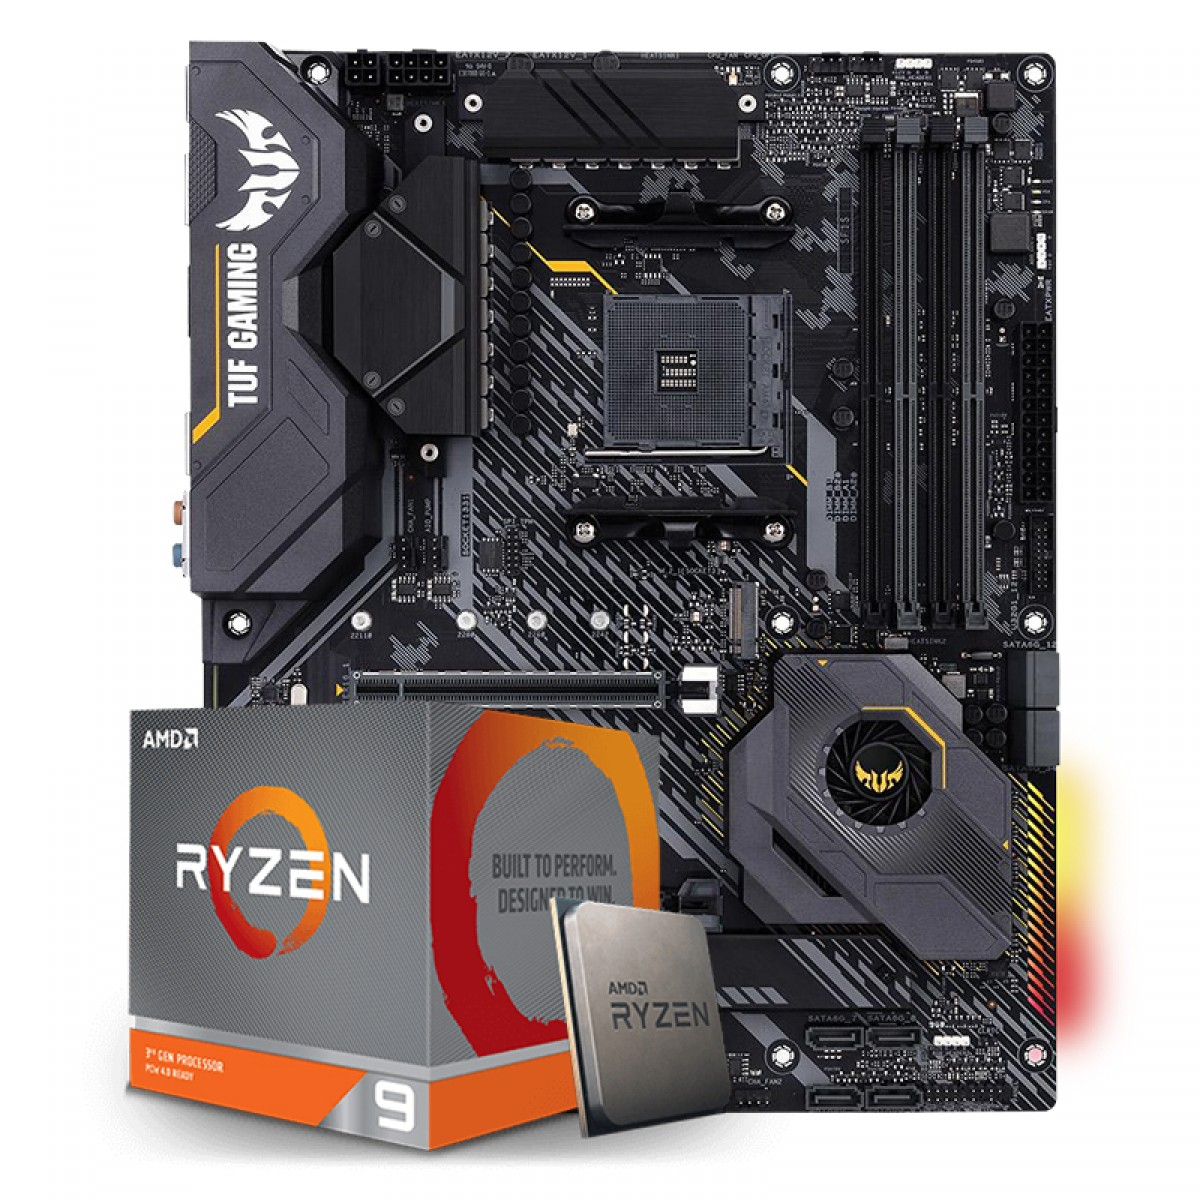 Kit Upgrade Placa Mãe Asus TUF Gaming X570-Plus AMD AM4 + Kit Processador AMD Ryzen 9 3900x 3.8ghz